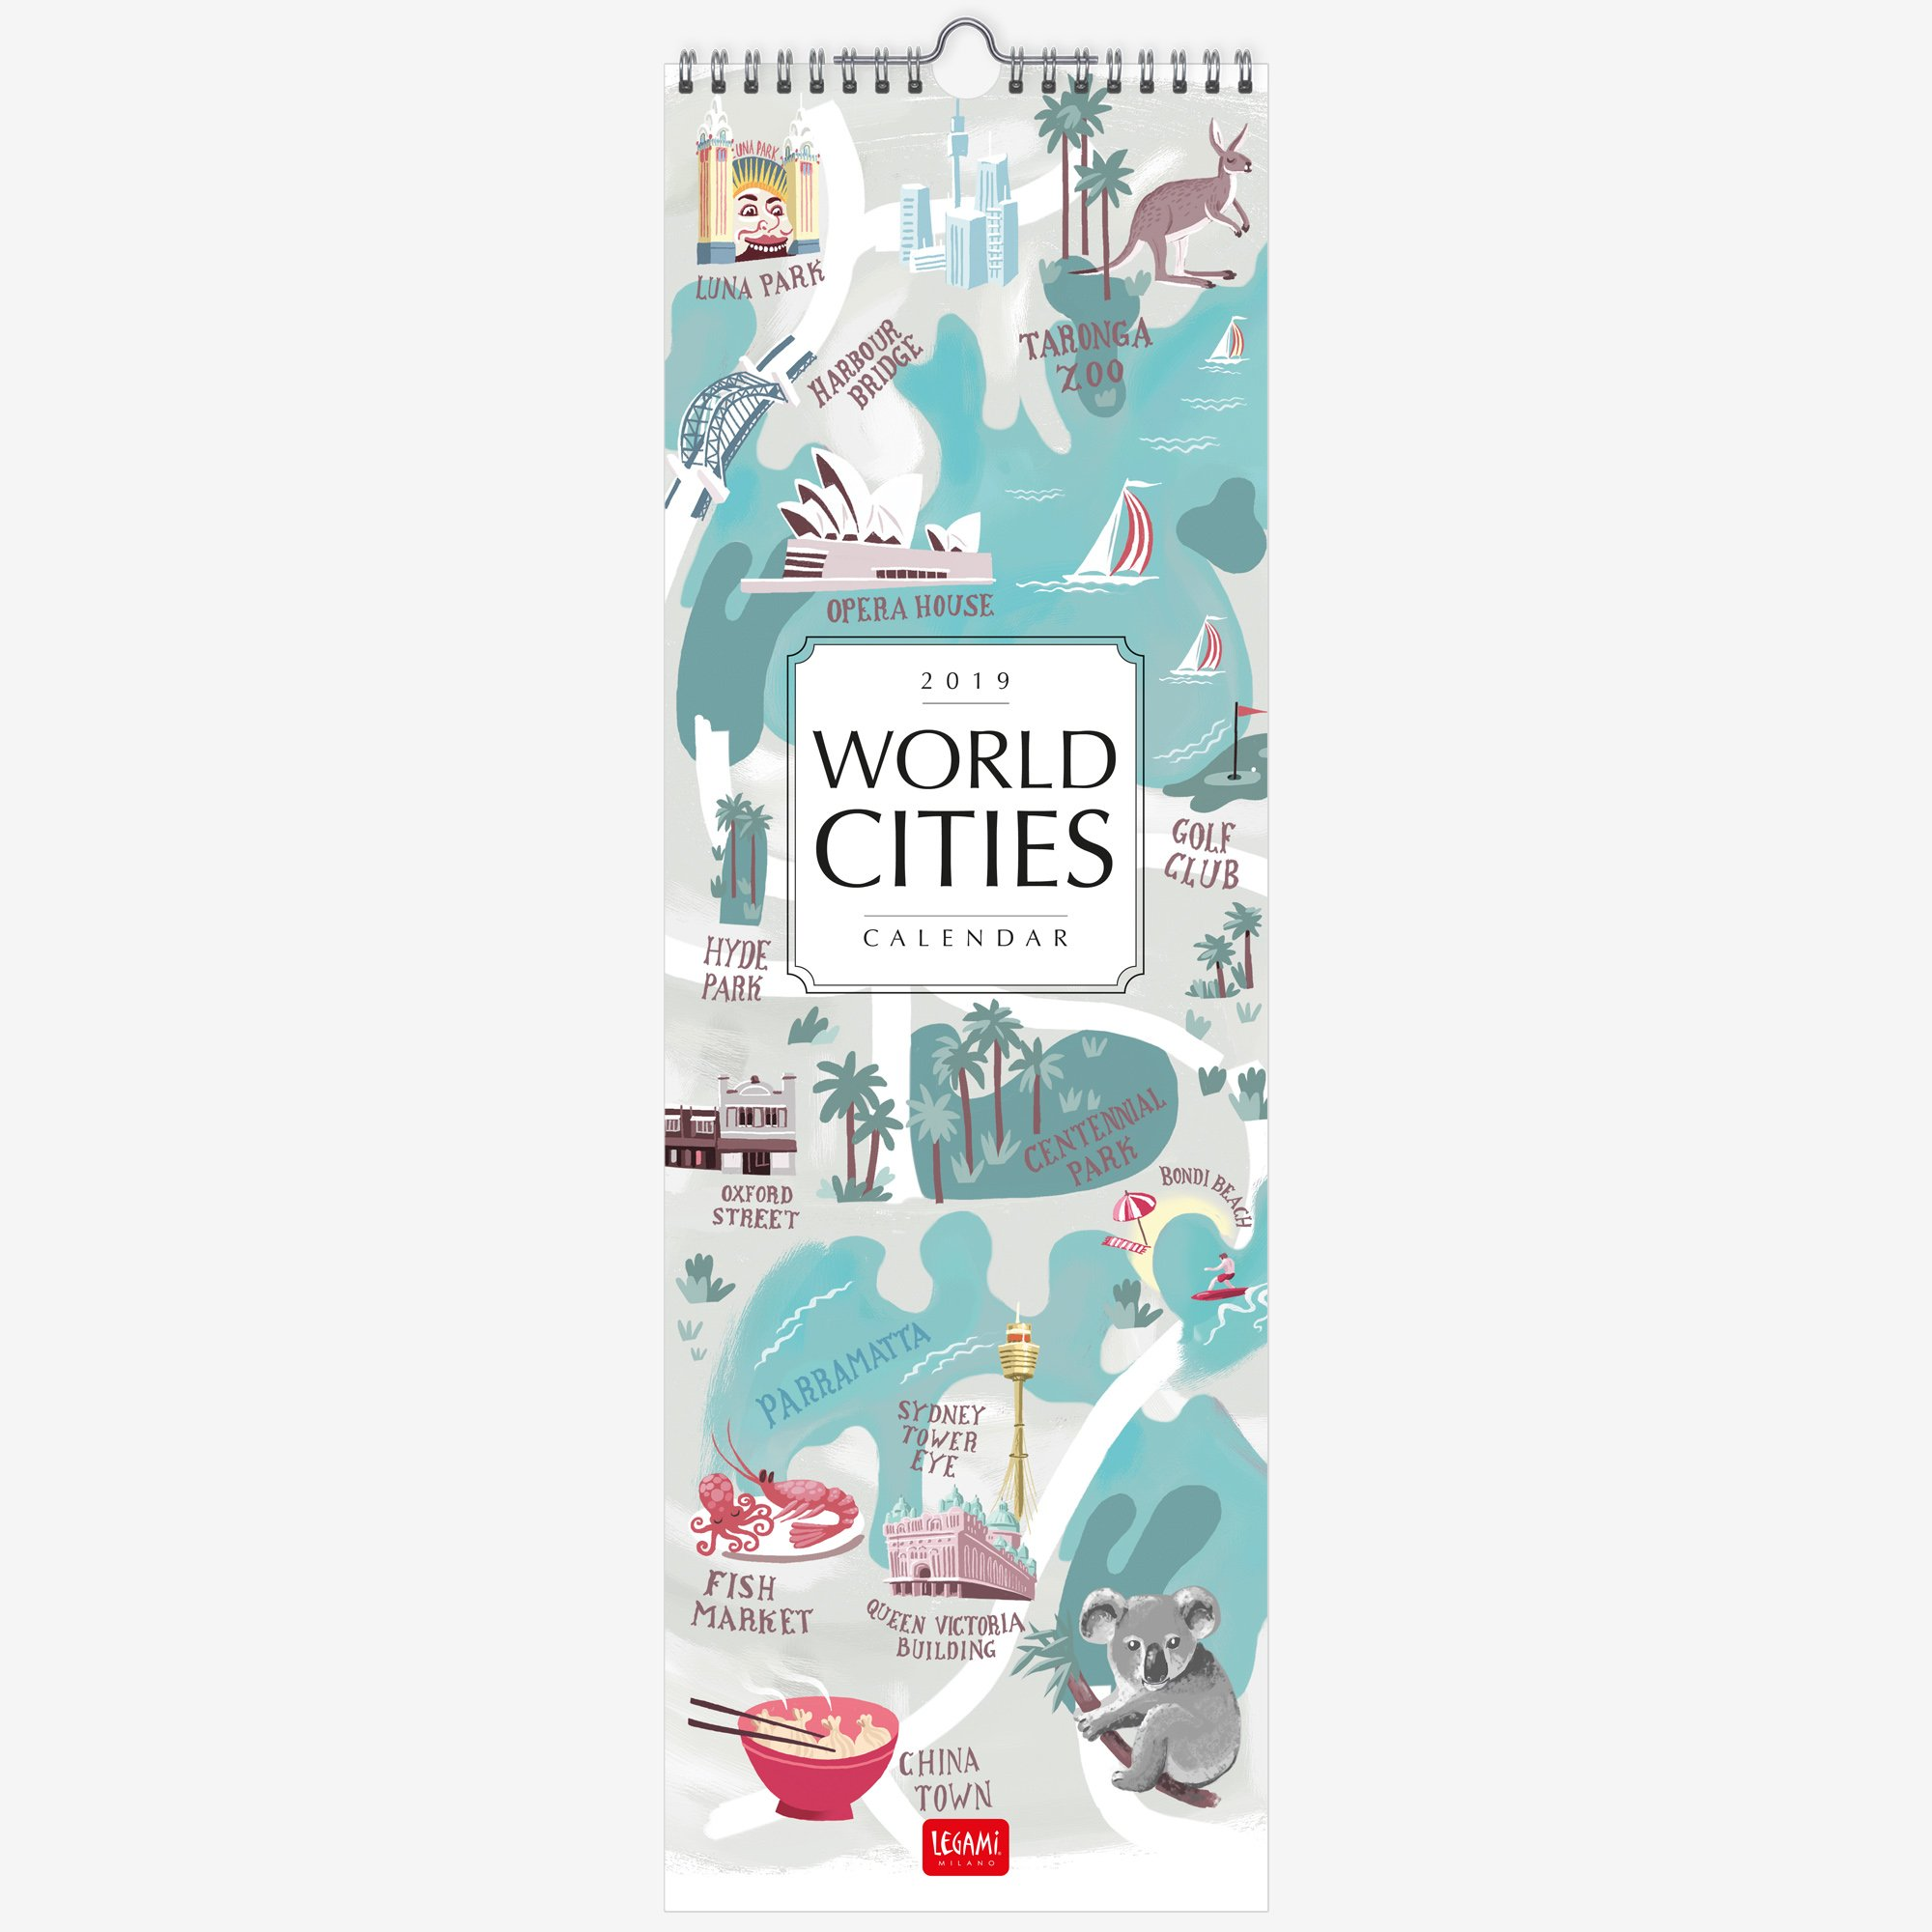 Calendario Legami.Legami Calendario Da Parete 2019 Dimensioni 16 X 49 Cm World Cities Agenda Perfetta